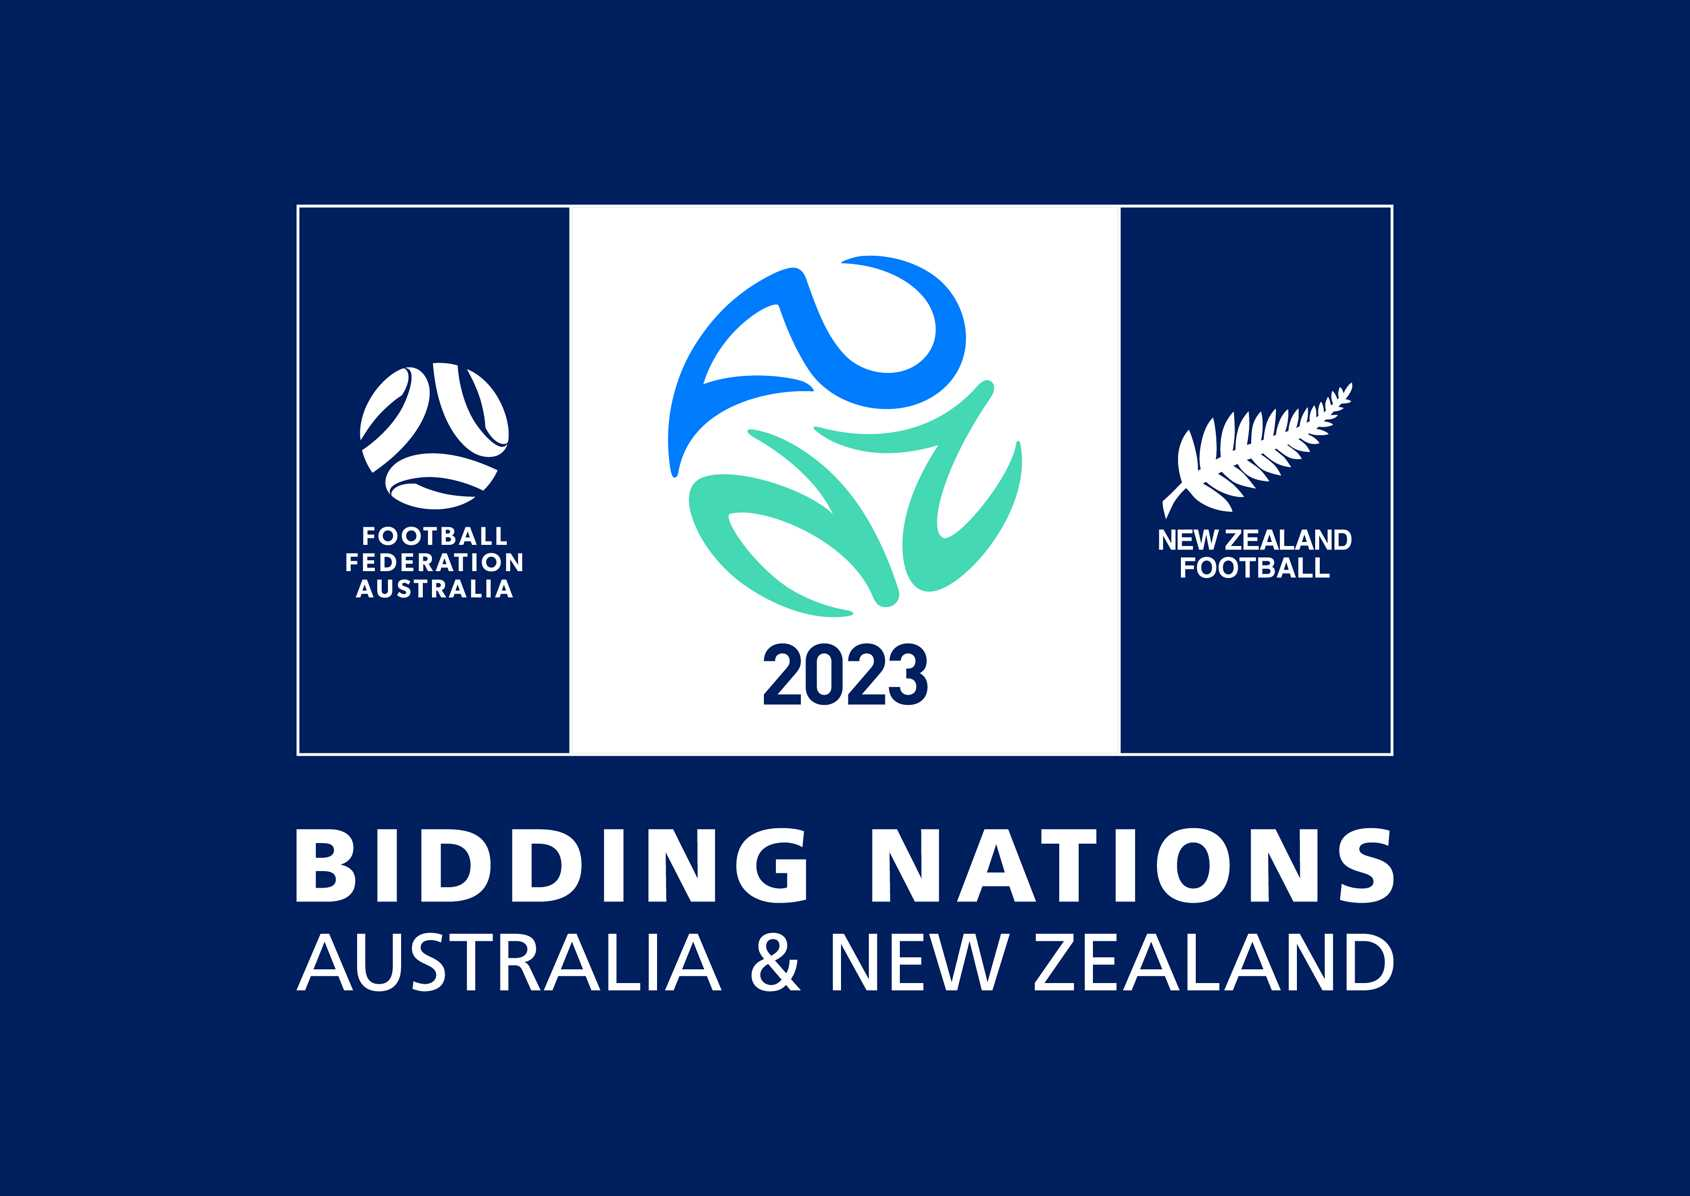 FFA and NZF unite 'As One' to bid for FIFA Women's World Cup